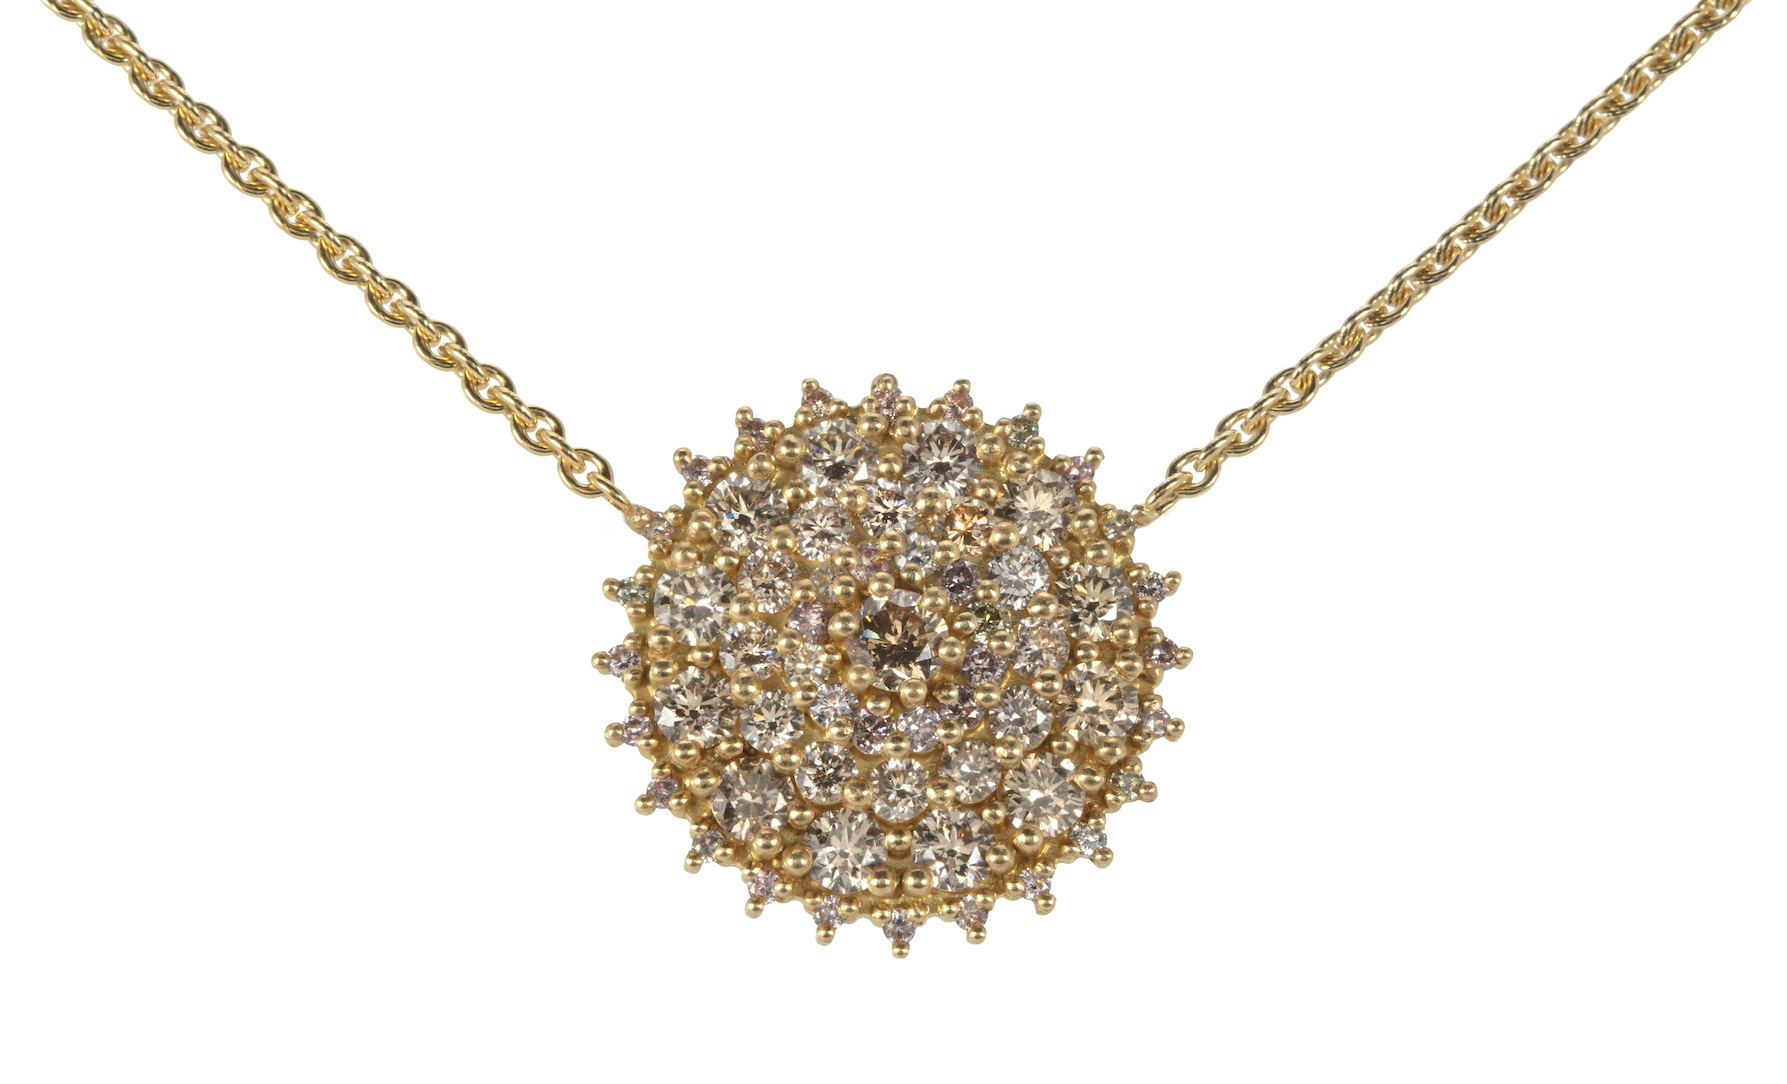 Chandelier Gold and Diamond Necklace